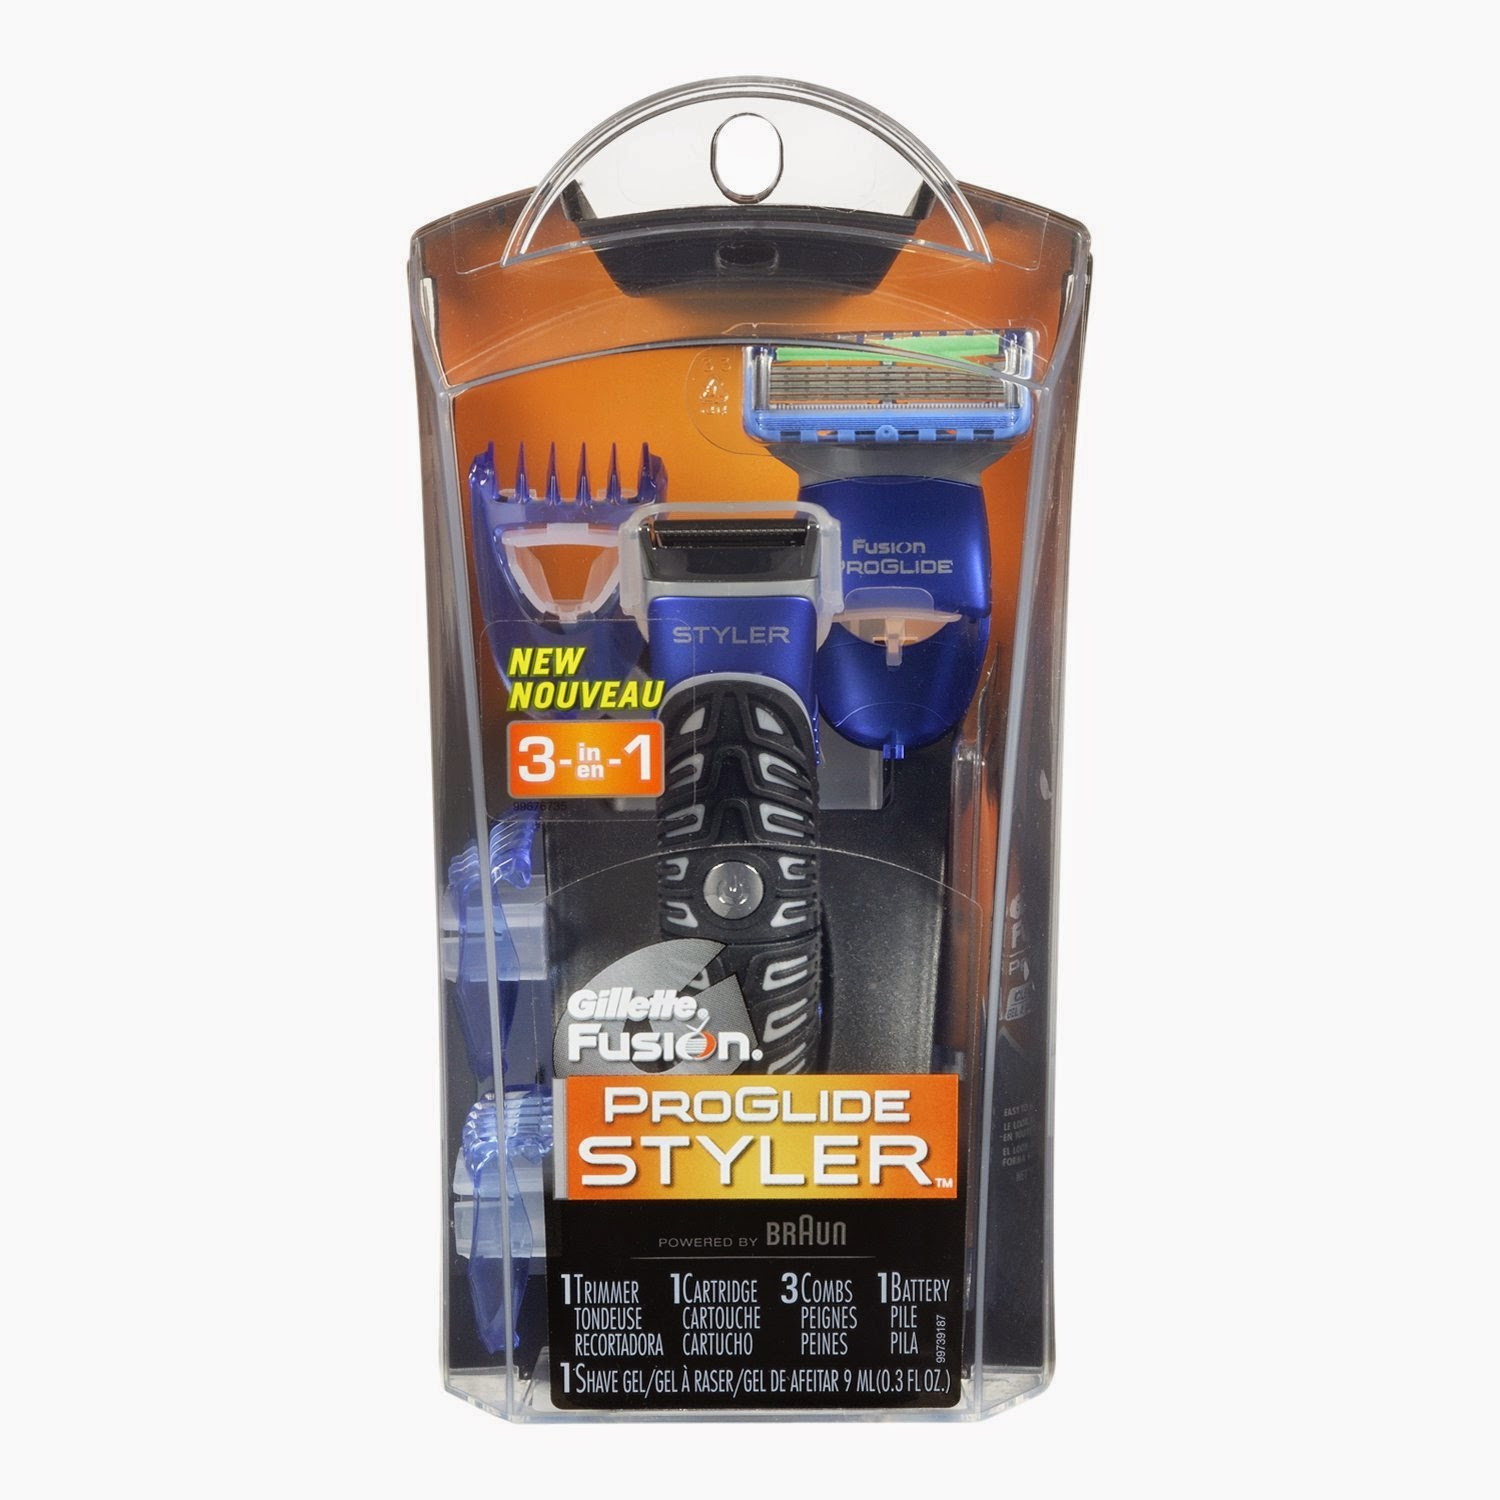 Amazon: Buy Gillette Fusion ProGlide Styler 3-in-1 Men's Body Groomer with Beard Trimmer at Rs.1099